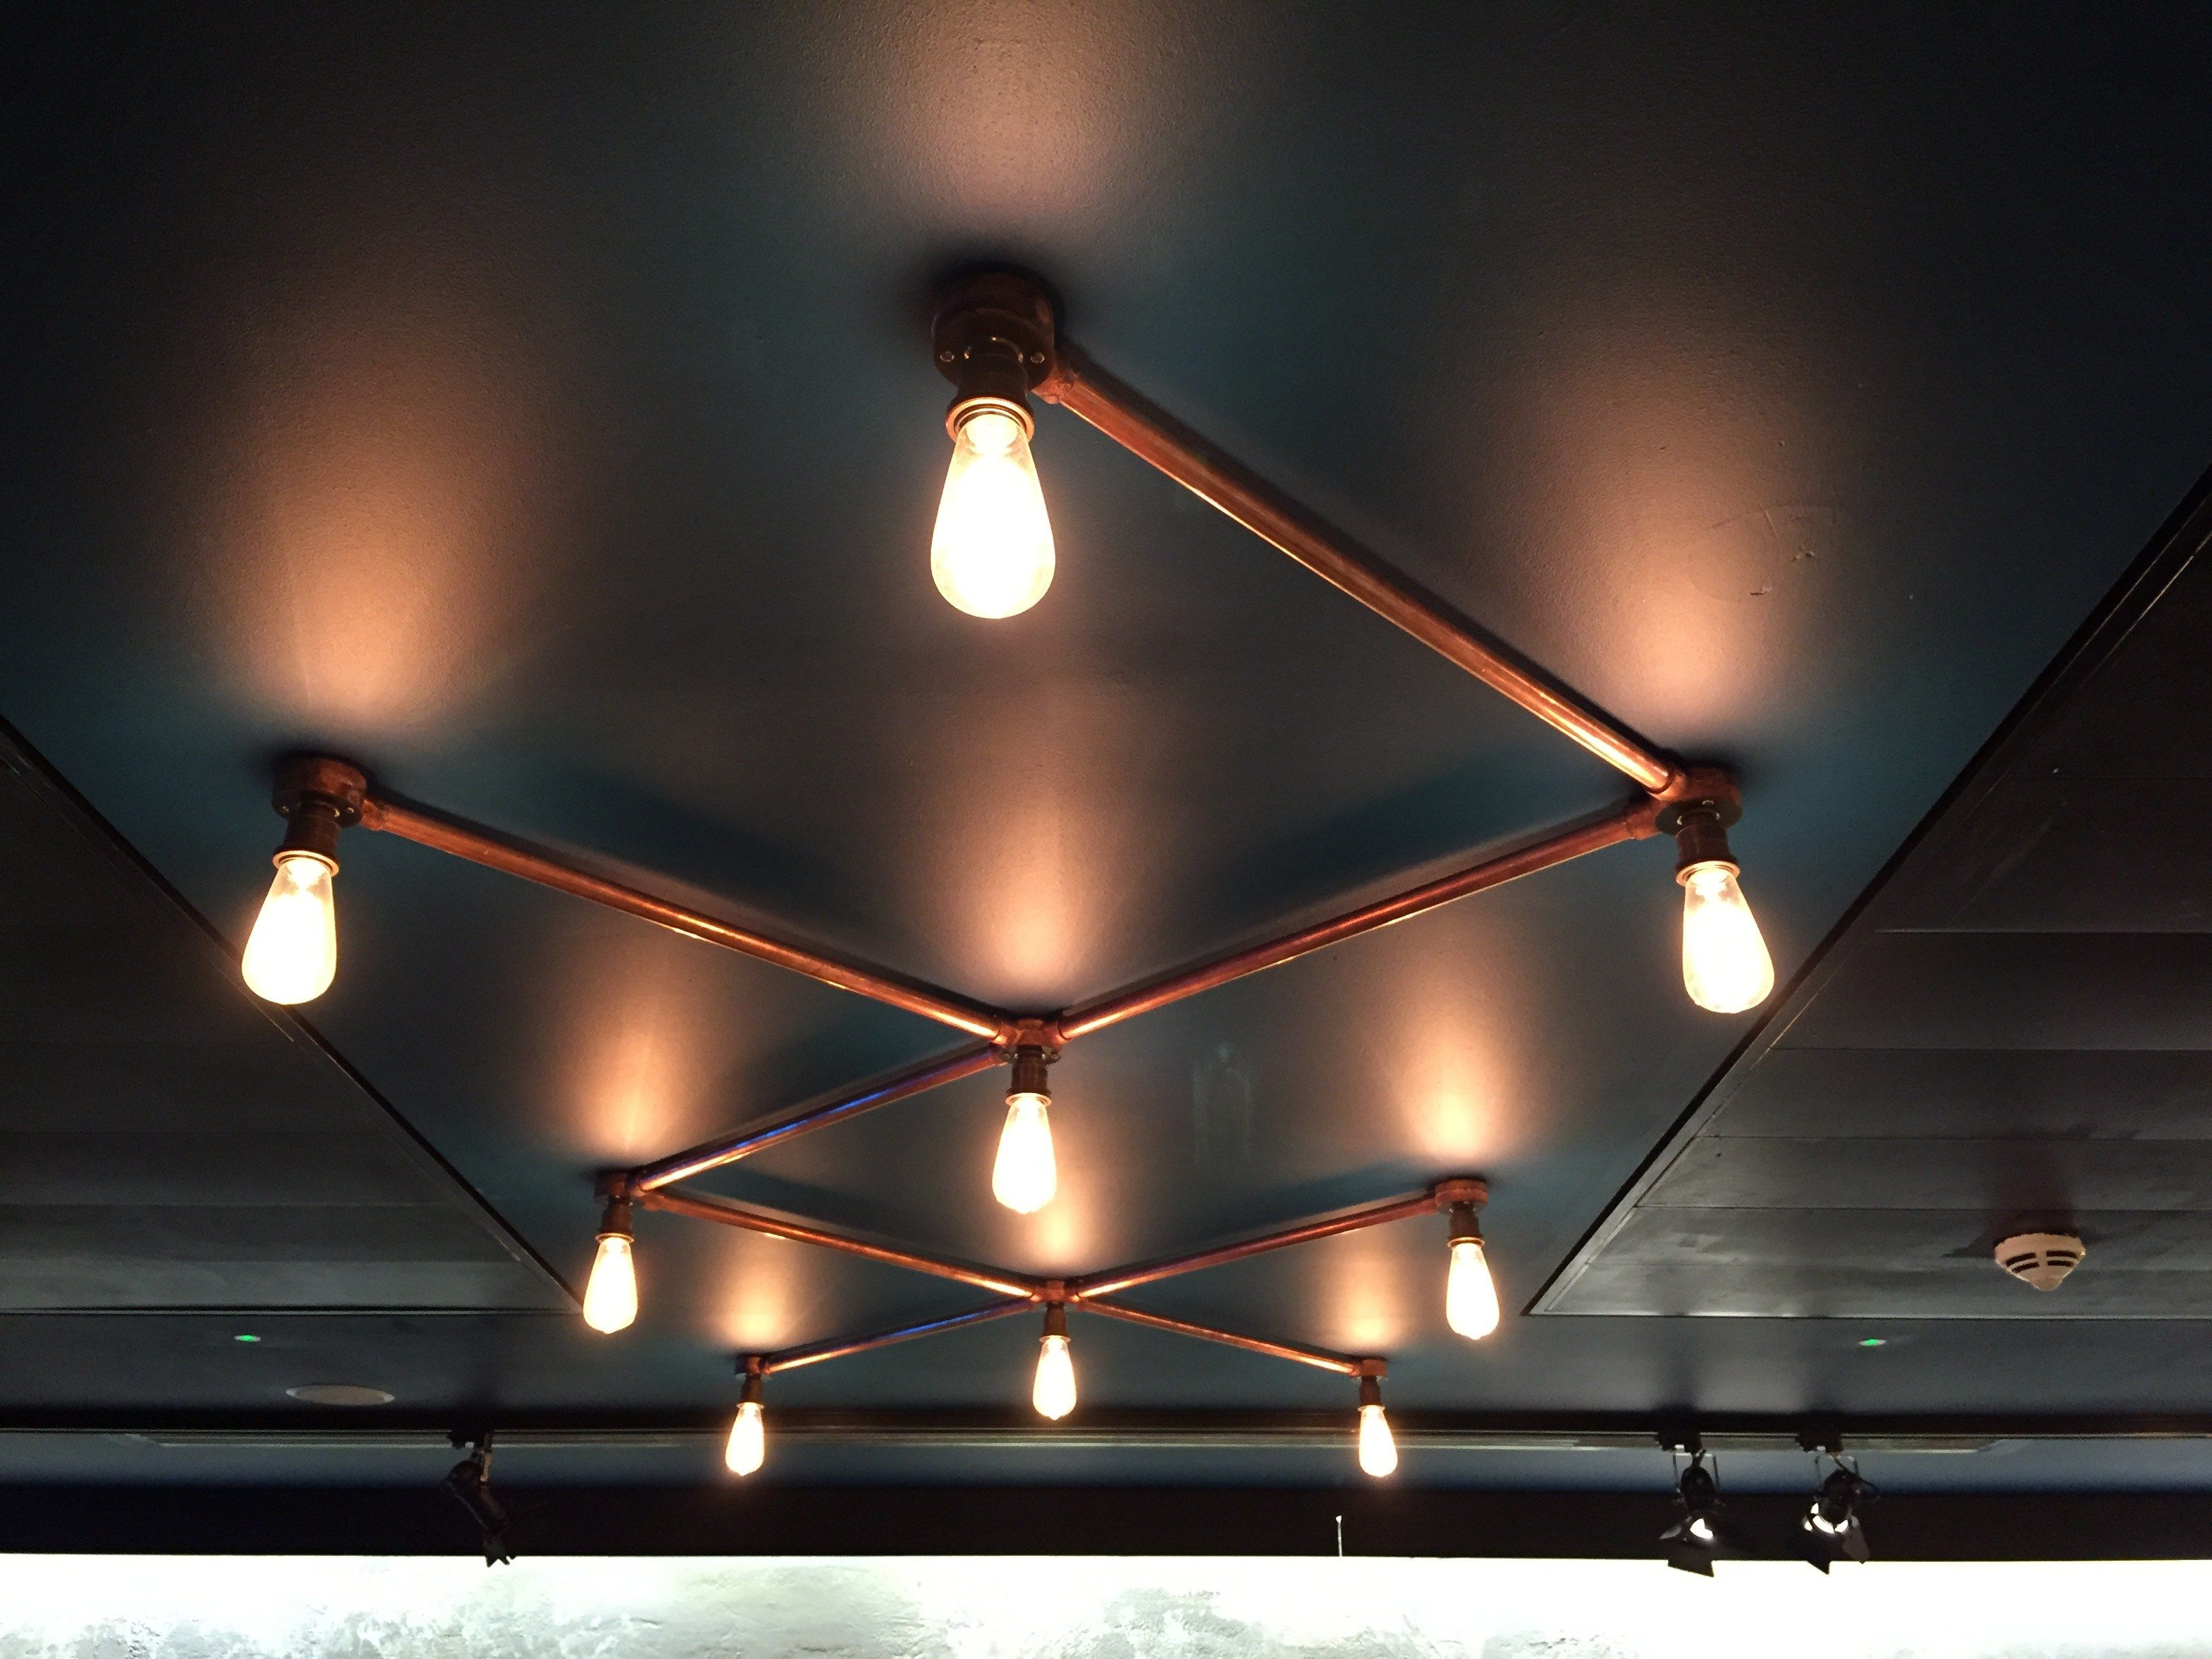 conduit light fittings hand made electrical new industrial bespoke kilner glass